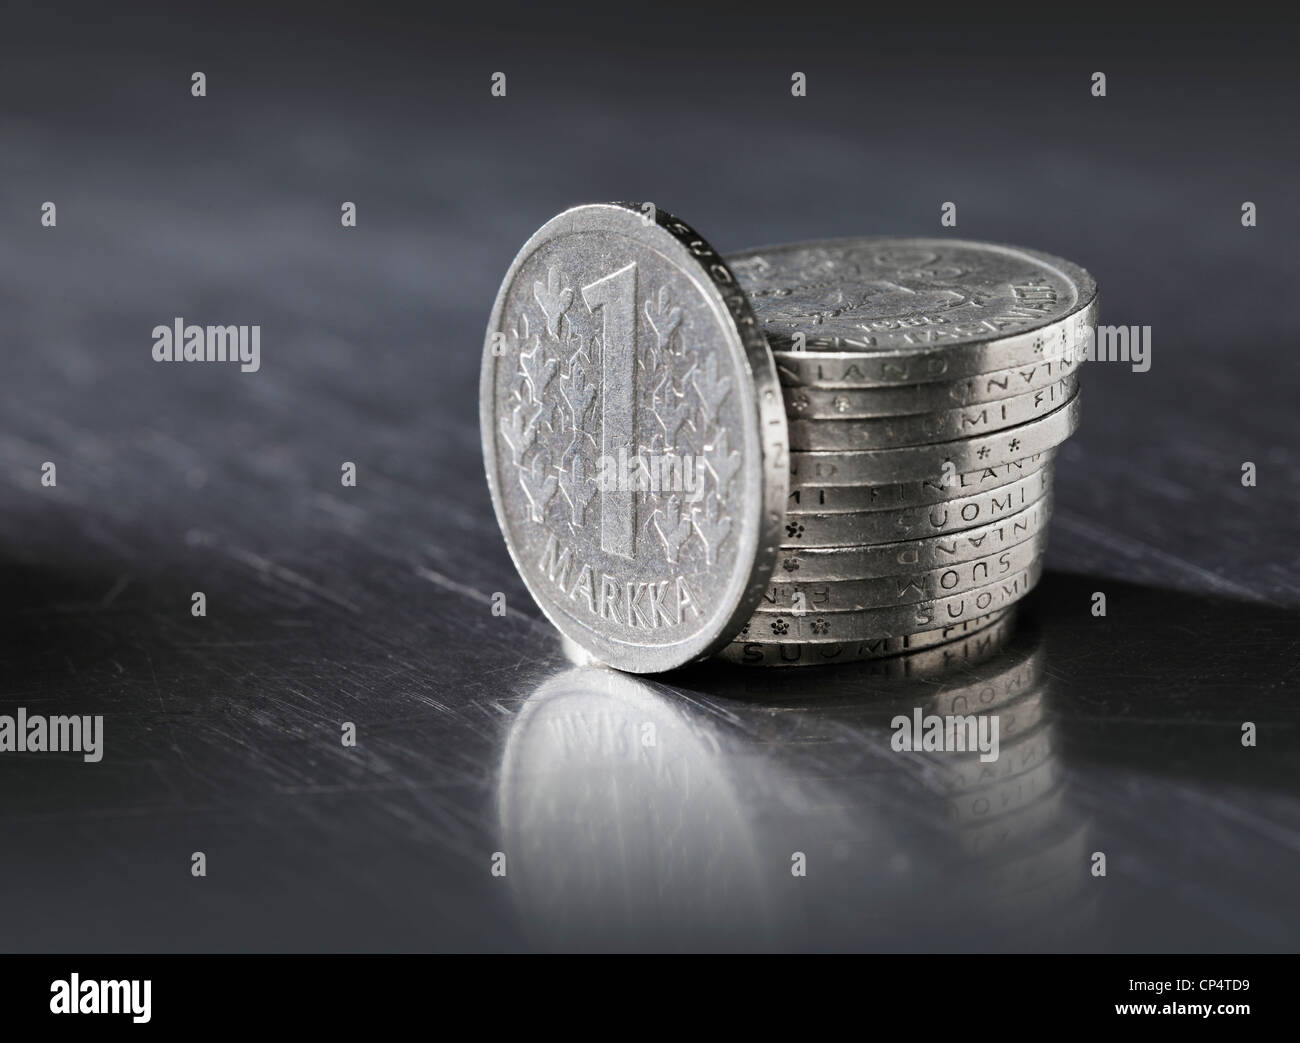 Finnish 1 Markka coins. This type of coin was struck and used between 1964 and 1993. - Stock Image